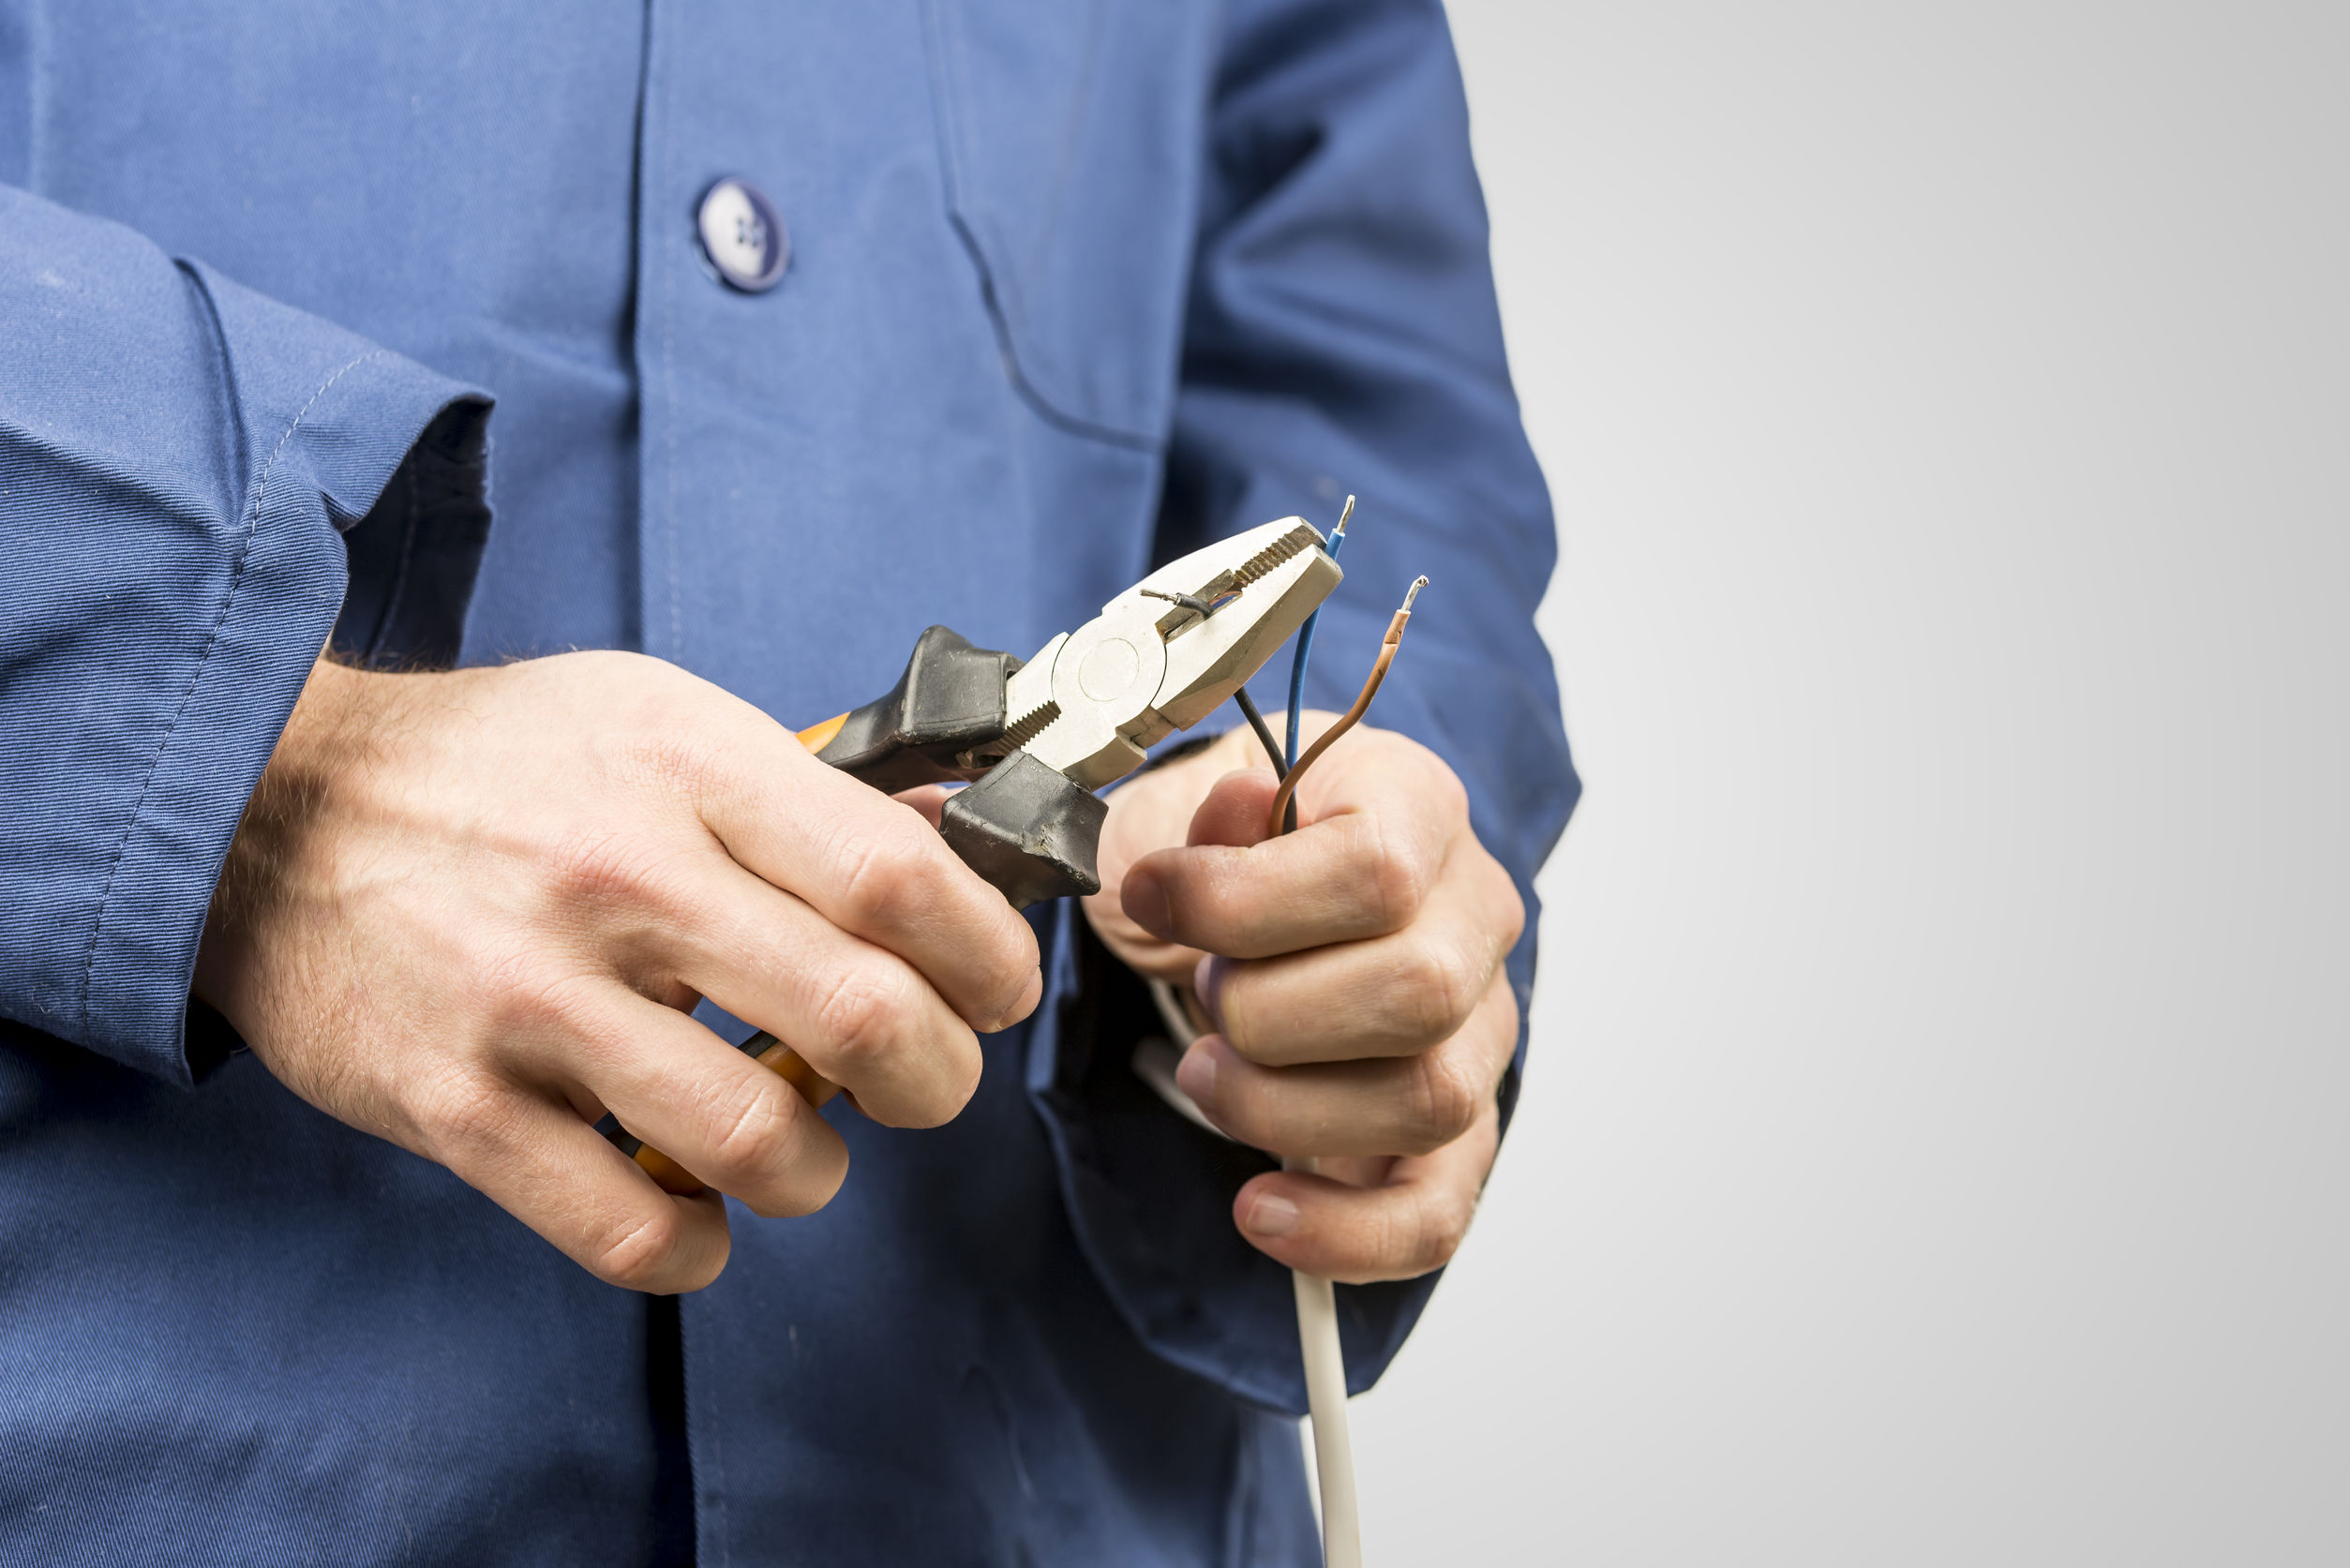 The Best Flat Nose Pliers: Shopping Guide and Recommendations (09/21)